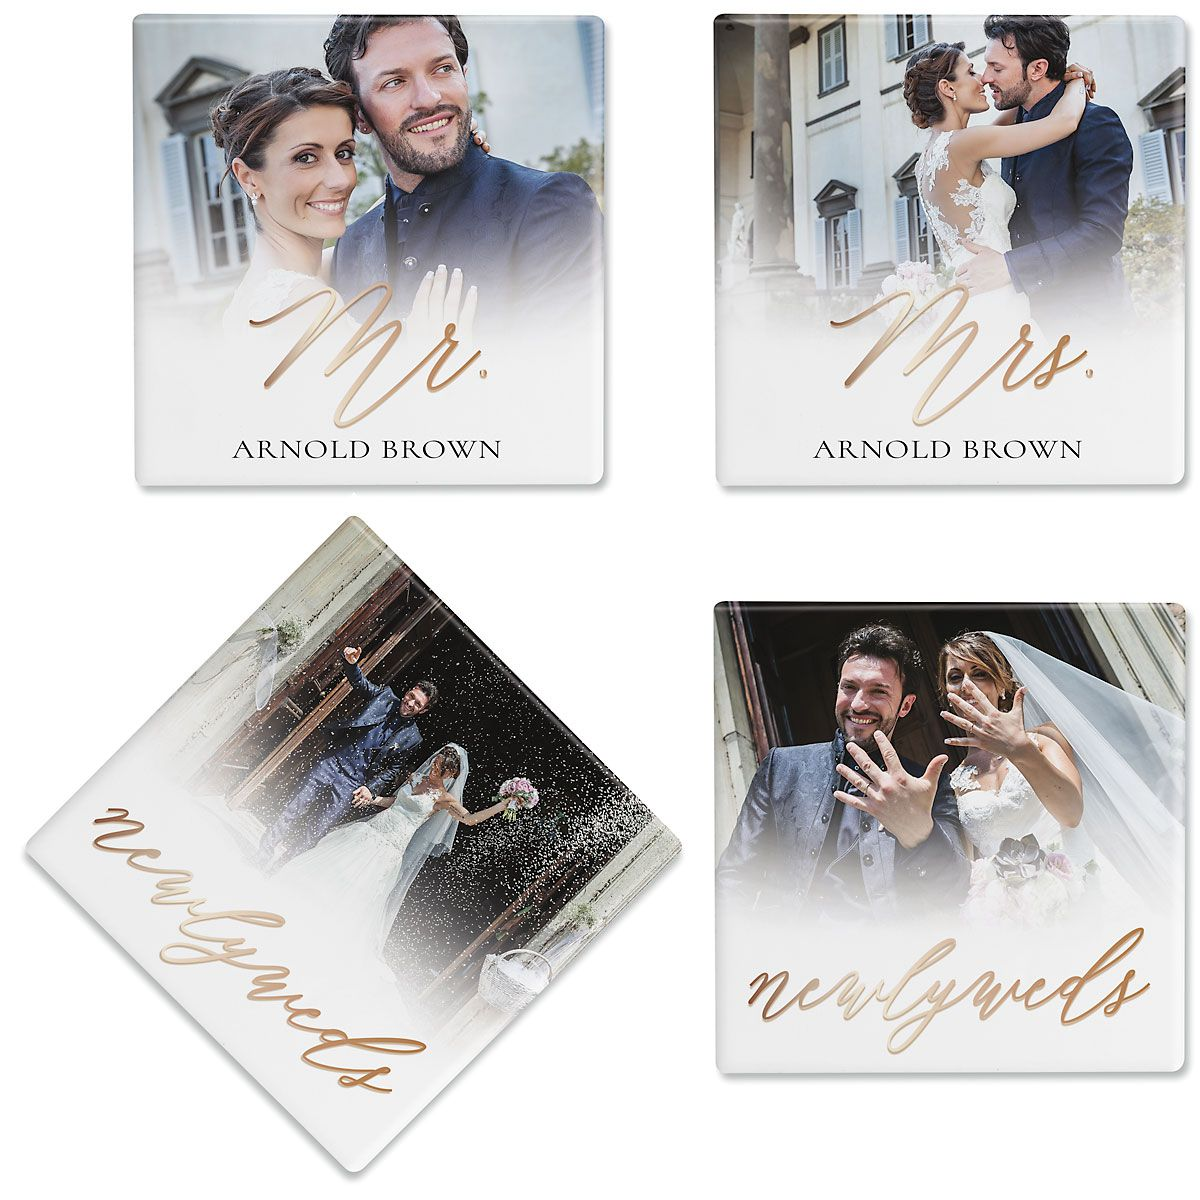 Newlyweds Photo Coasters